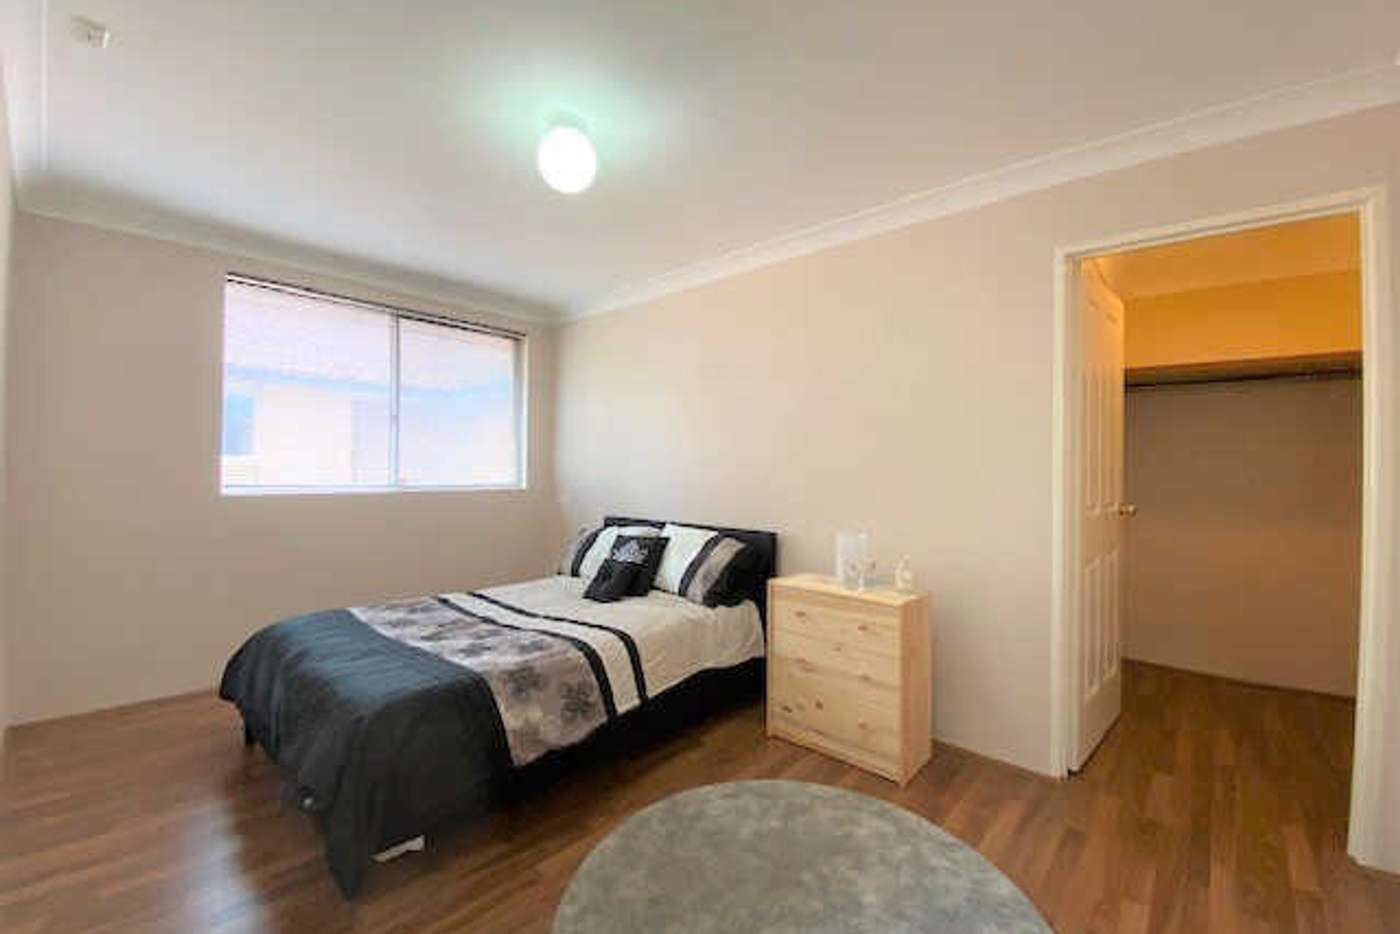 Sixth view of Homely unit listing, 20/37 Memorial Avenue, Merrylands NSW 2160